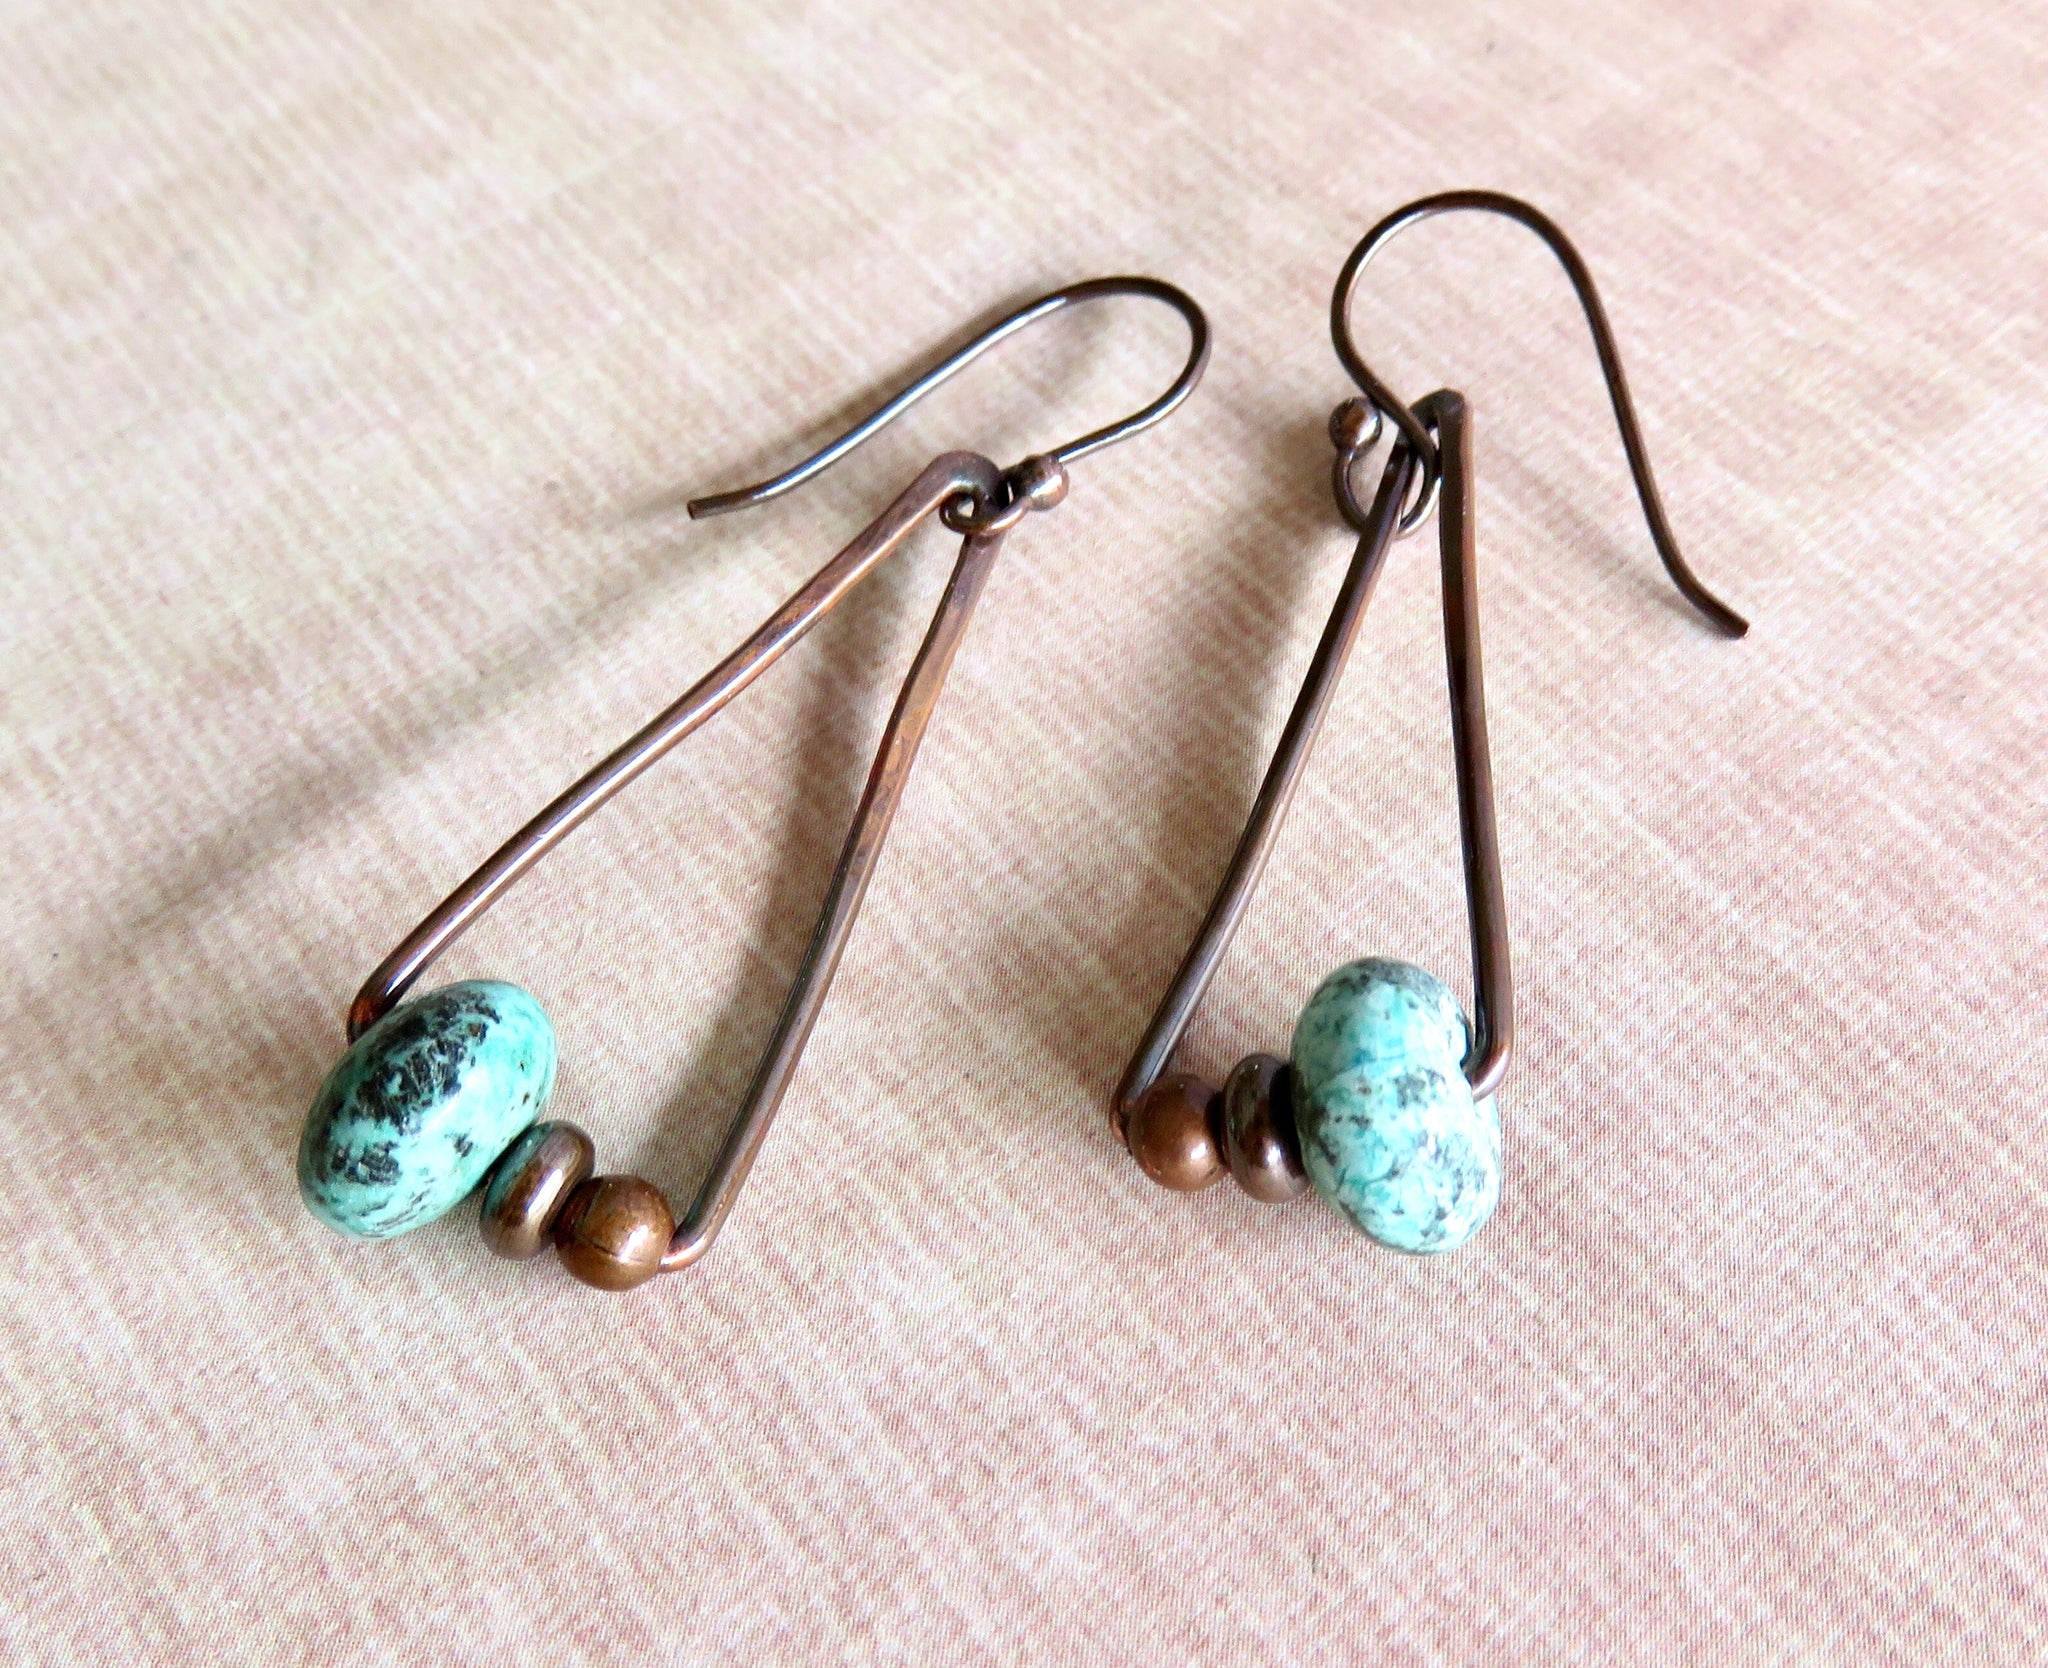 Geometric Earrings Copper and Turquoise, Copper Triangle Earrings - Desert Shine Designs